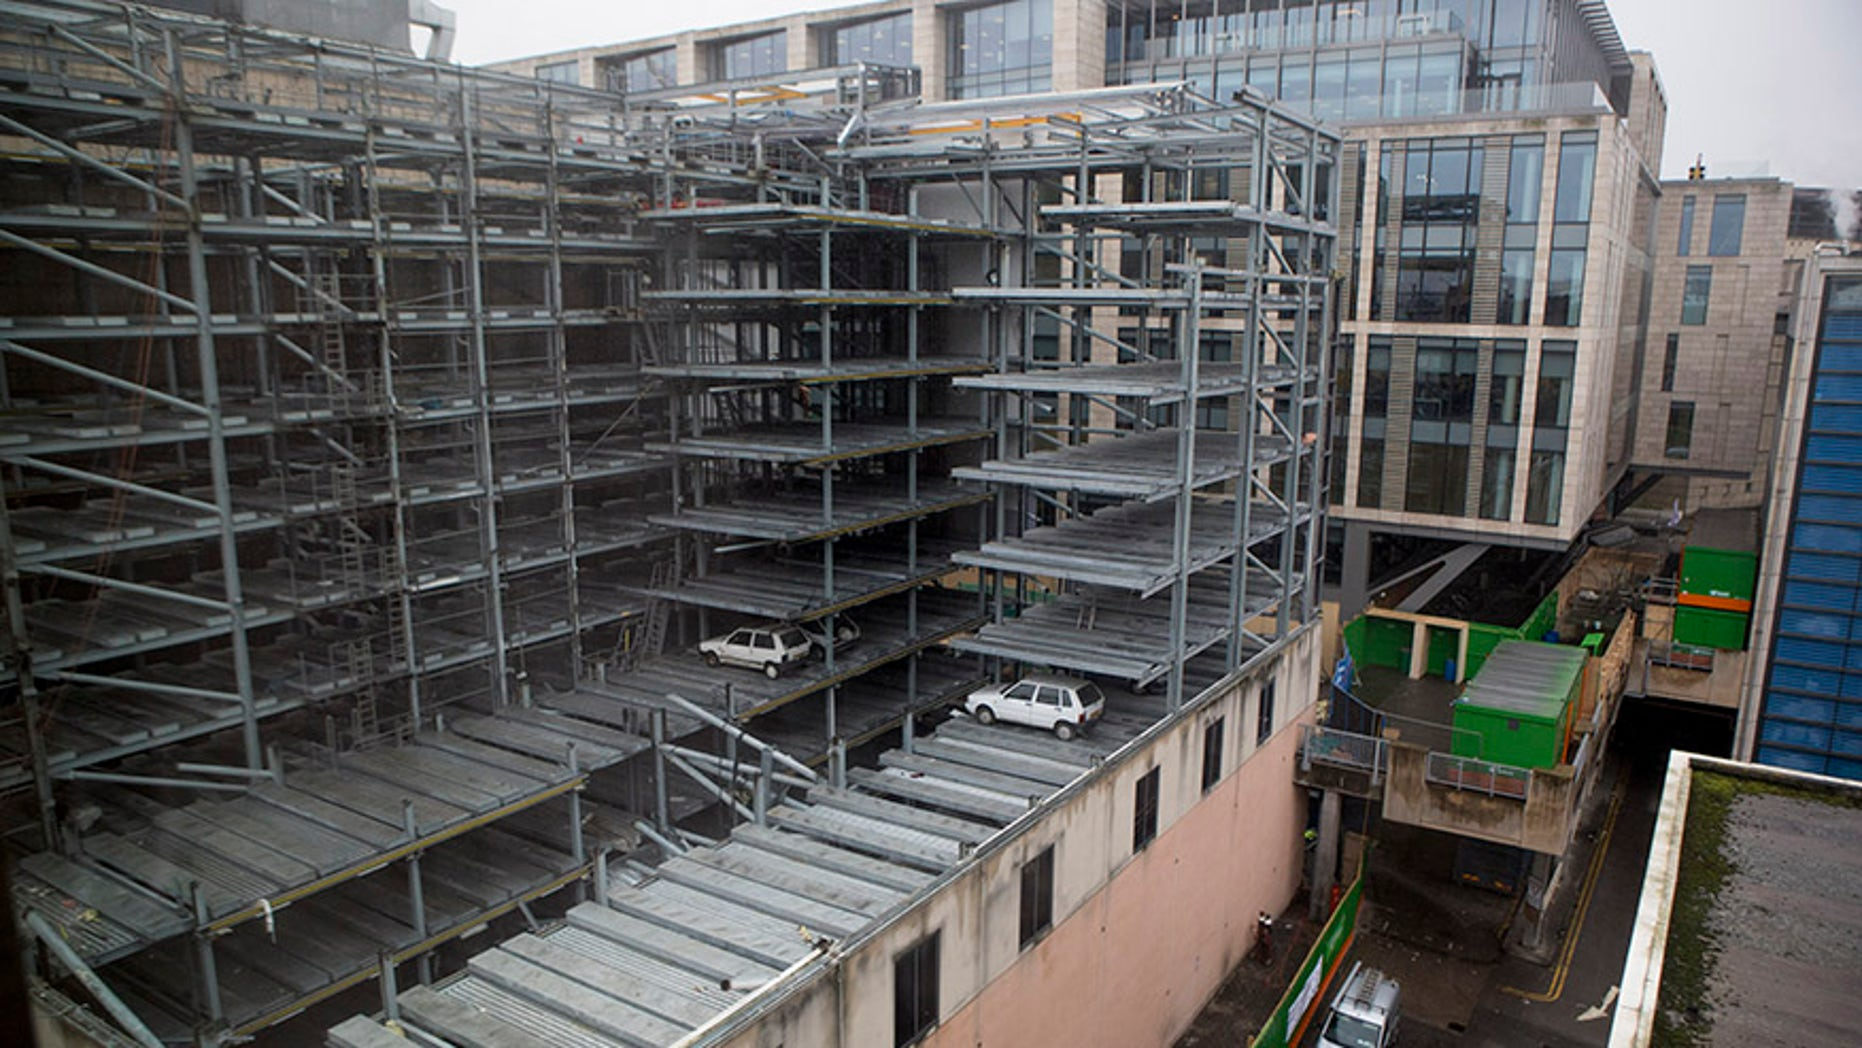 """Cars found trapped in Edinburgh's 'robot car park' 15 years after """"SkyPark"""" closed in 2003. Vehicles imprisoned in a disused robotic car park for more than a decade are set to be preserved by demolition crews after work to redevelop the building got underway. Jan 23 2018. See Centre Press story CPCARS; Eight vehicles stuck in a disused robotic car park for more than a decade will be preserved by demolition crews. The £5 million Autosafe """"SkyPark"""" was hailed as Britain's """"most technologically advanced car park"""" when it opened in Edinburgh in 2001. But the tenure of the car park was short-lived after the company that operated it went into receivership in 2003. It was rumoured at the time that administrators had simply arrived one day to lock the doors, leaving dozens of cars trapped inside. And now, new pictures from a building opposite the site in the centre of Edinburgh show a """"time capsule"""" with vehicles which look to be models from the late 1990s."""